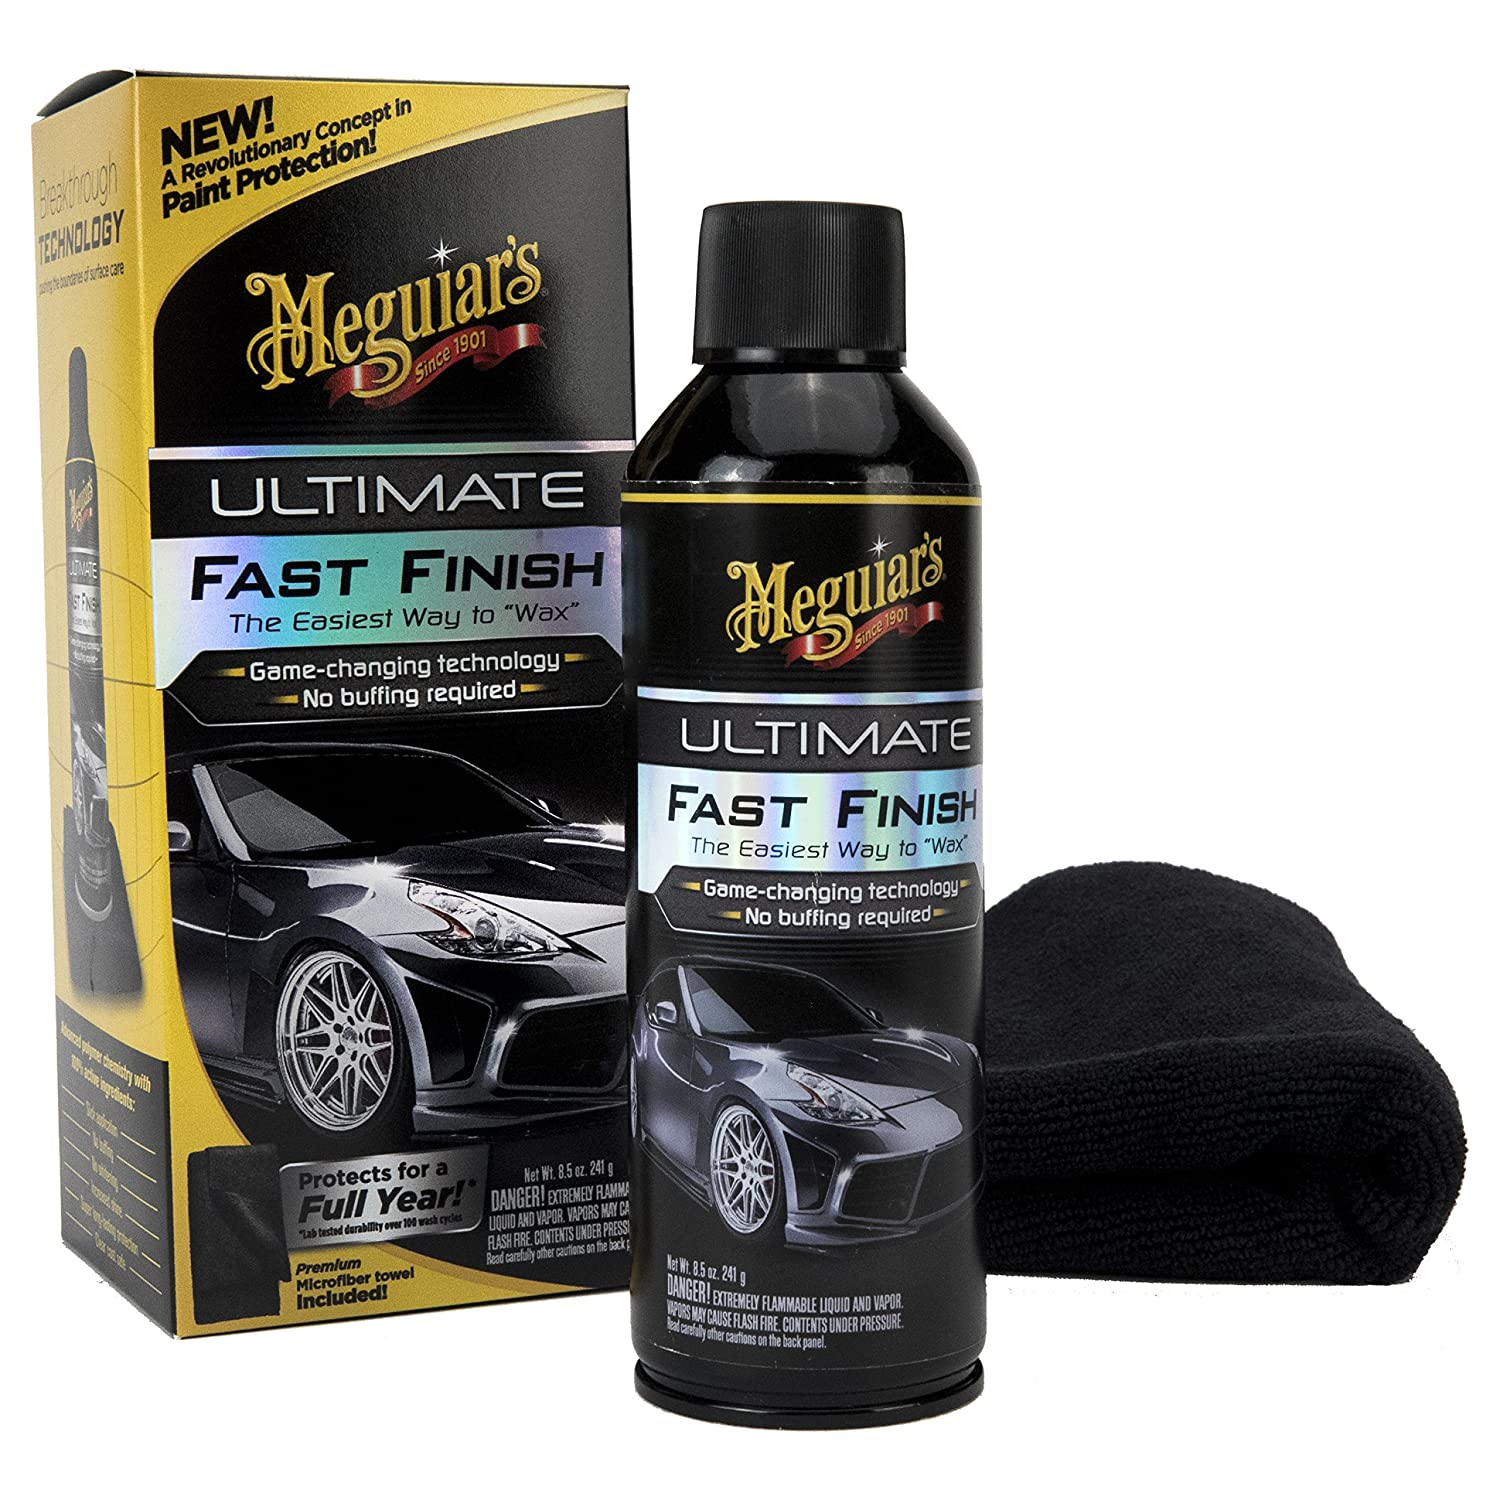 "Meguiar's Ultimate Fast Finish – The Easiest Way to ""Wax"" – G18309, 8.5 oz Meguiar's Meguiar's Ultimate Fast Finish – The Easiest Way to ""Wax"" – G18309"